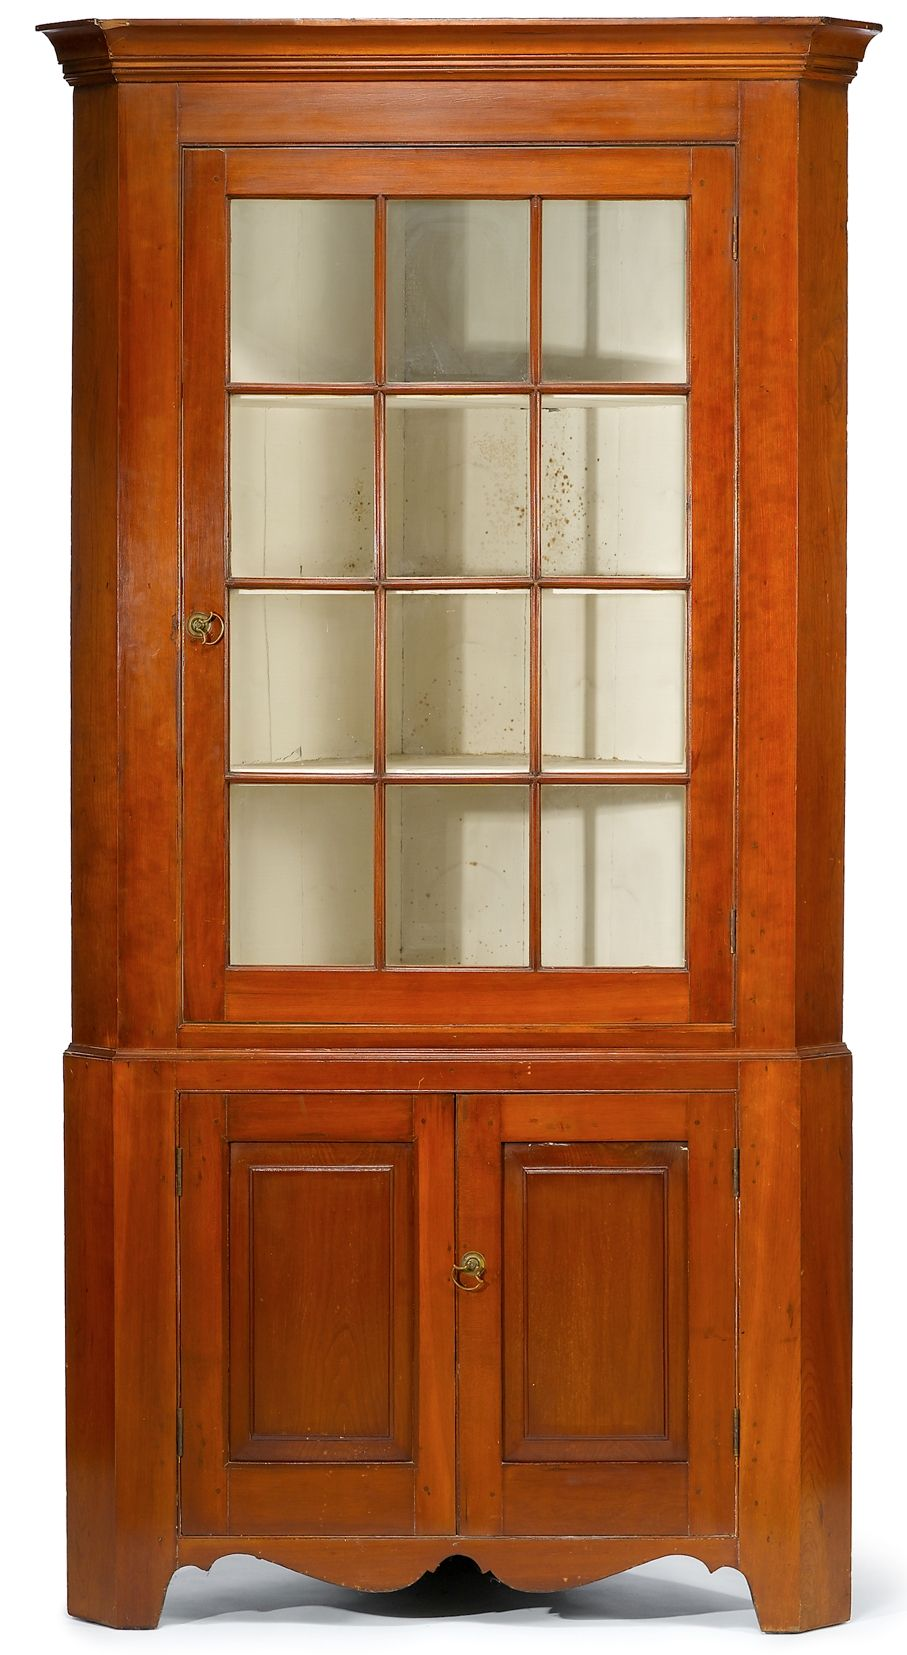 Antique Corner Cupboard For Sale - Antique Corner Cupboard For Sale Antique Furniture